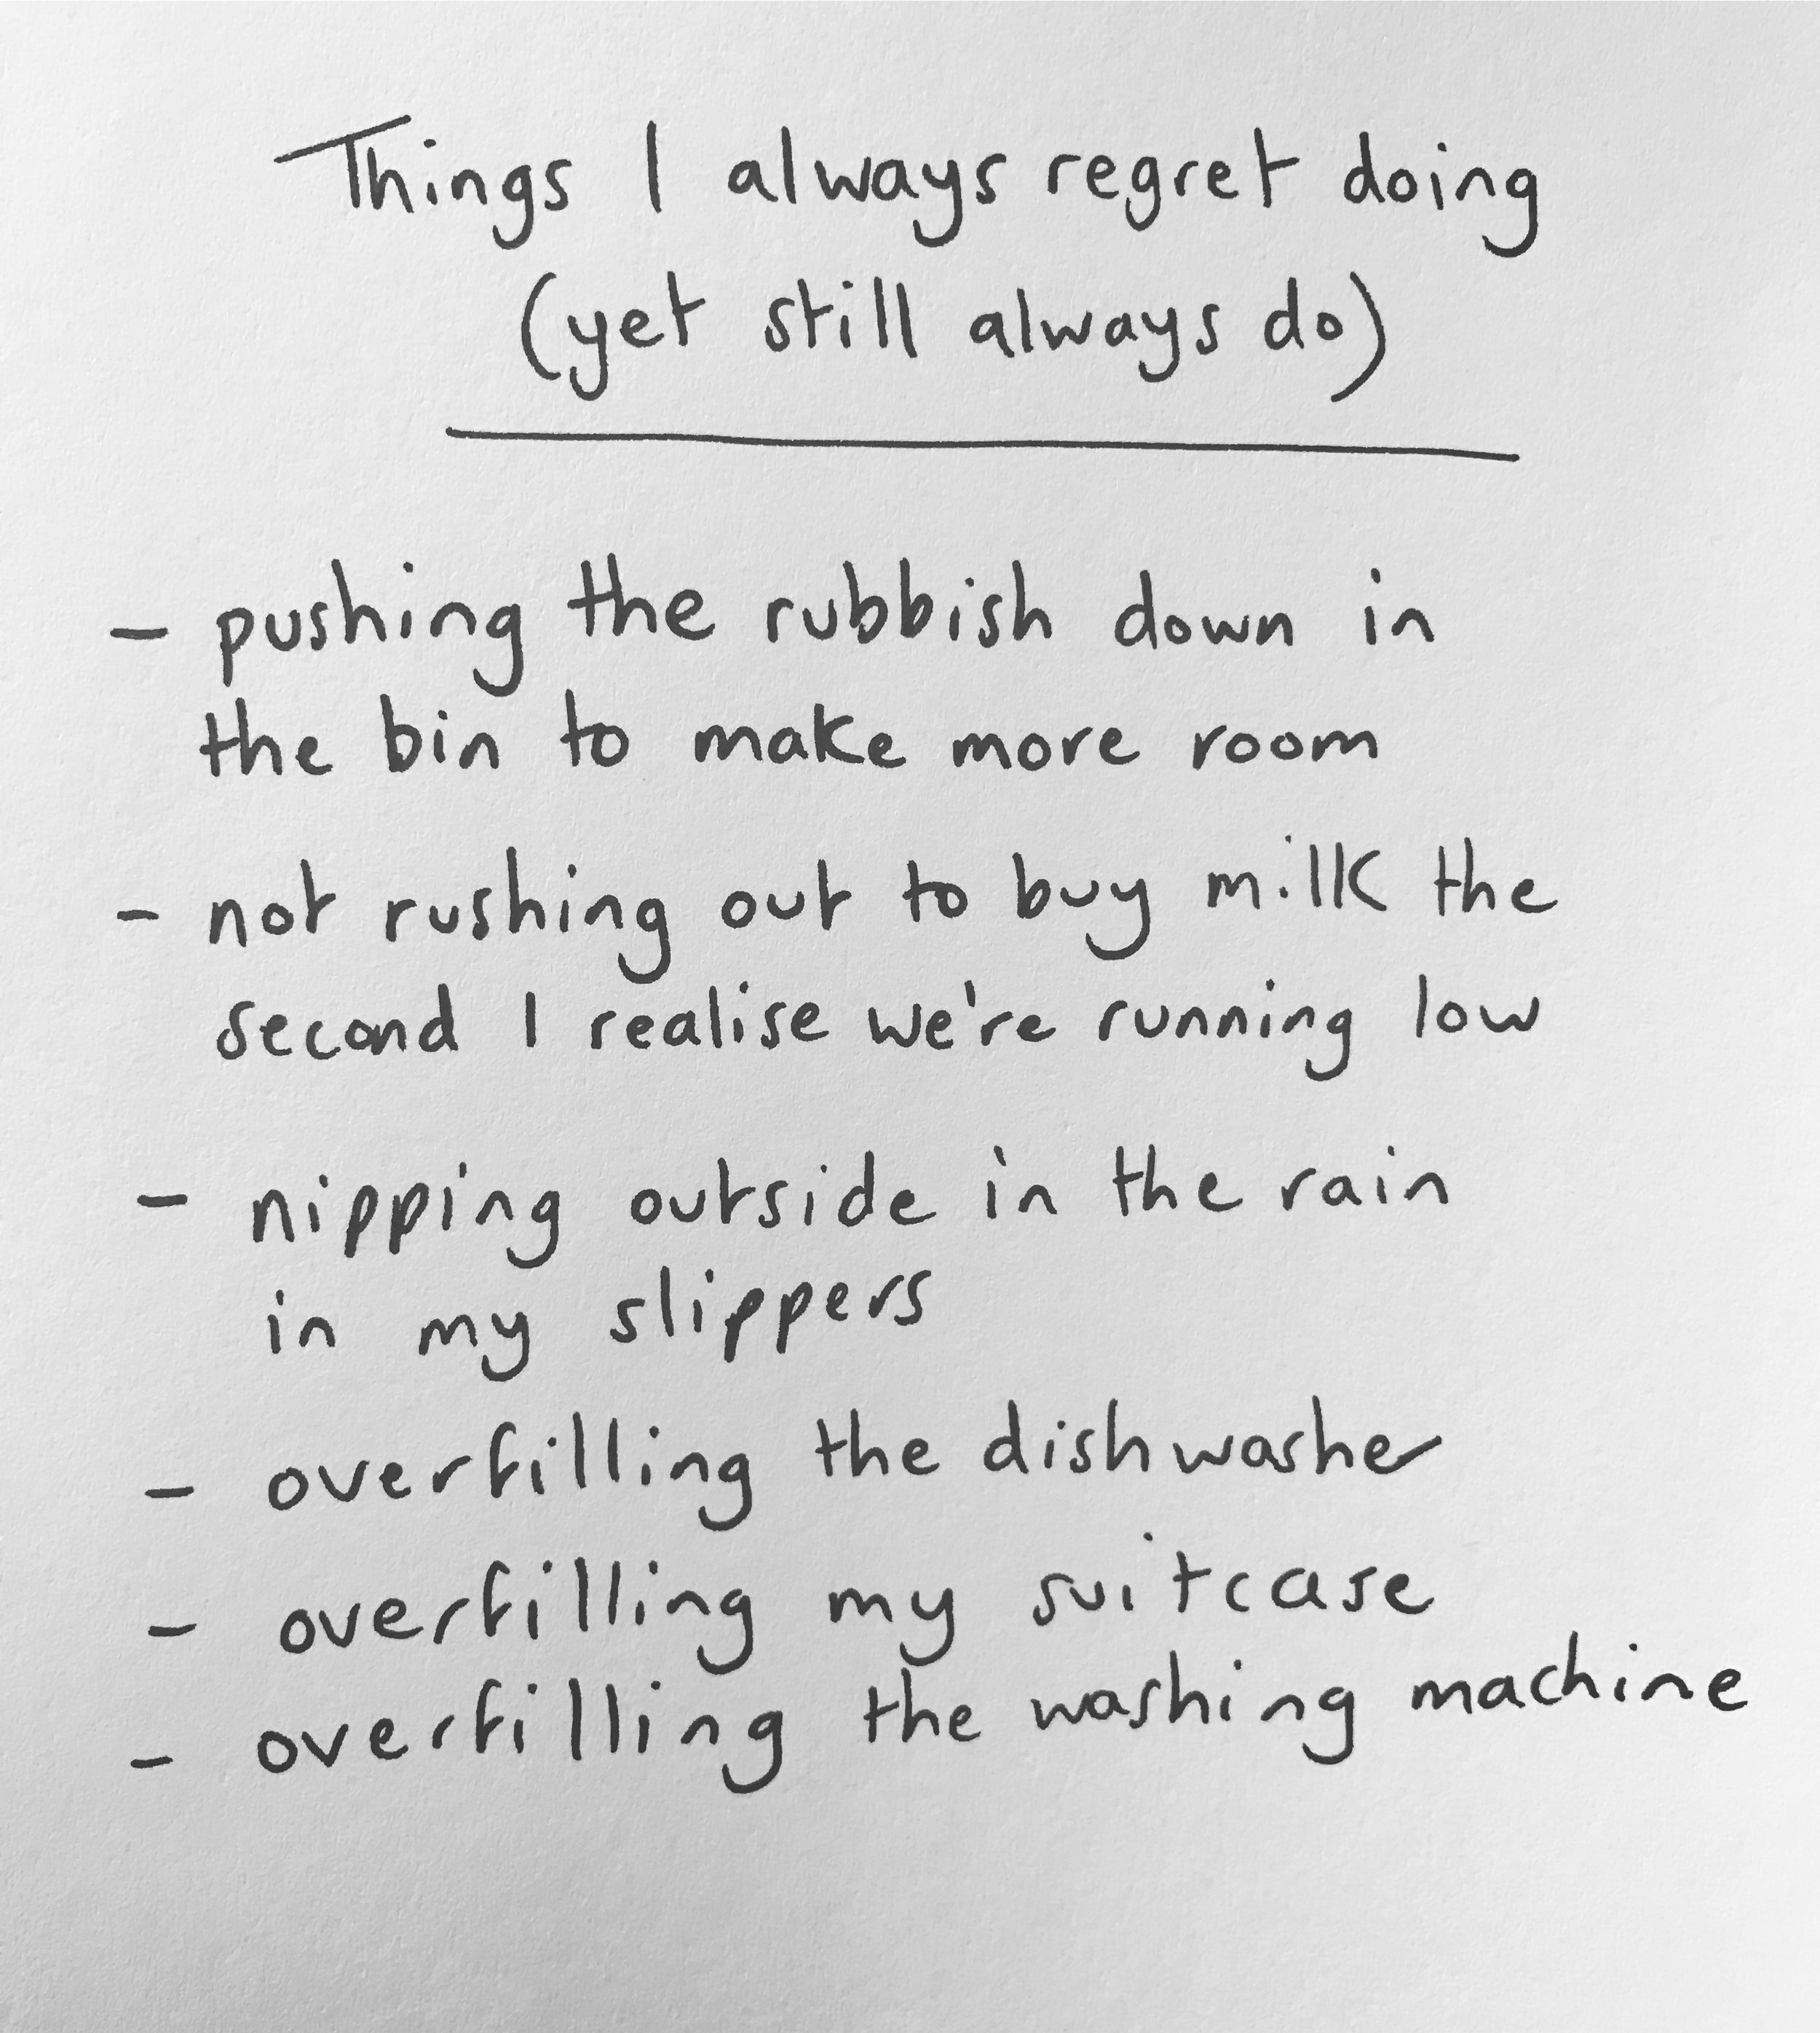 things I always regret doing but still do anyway